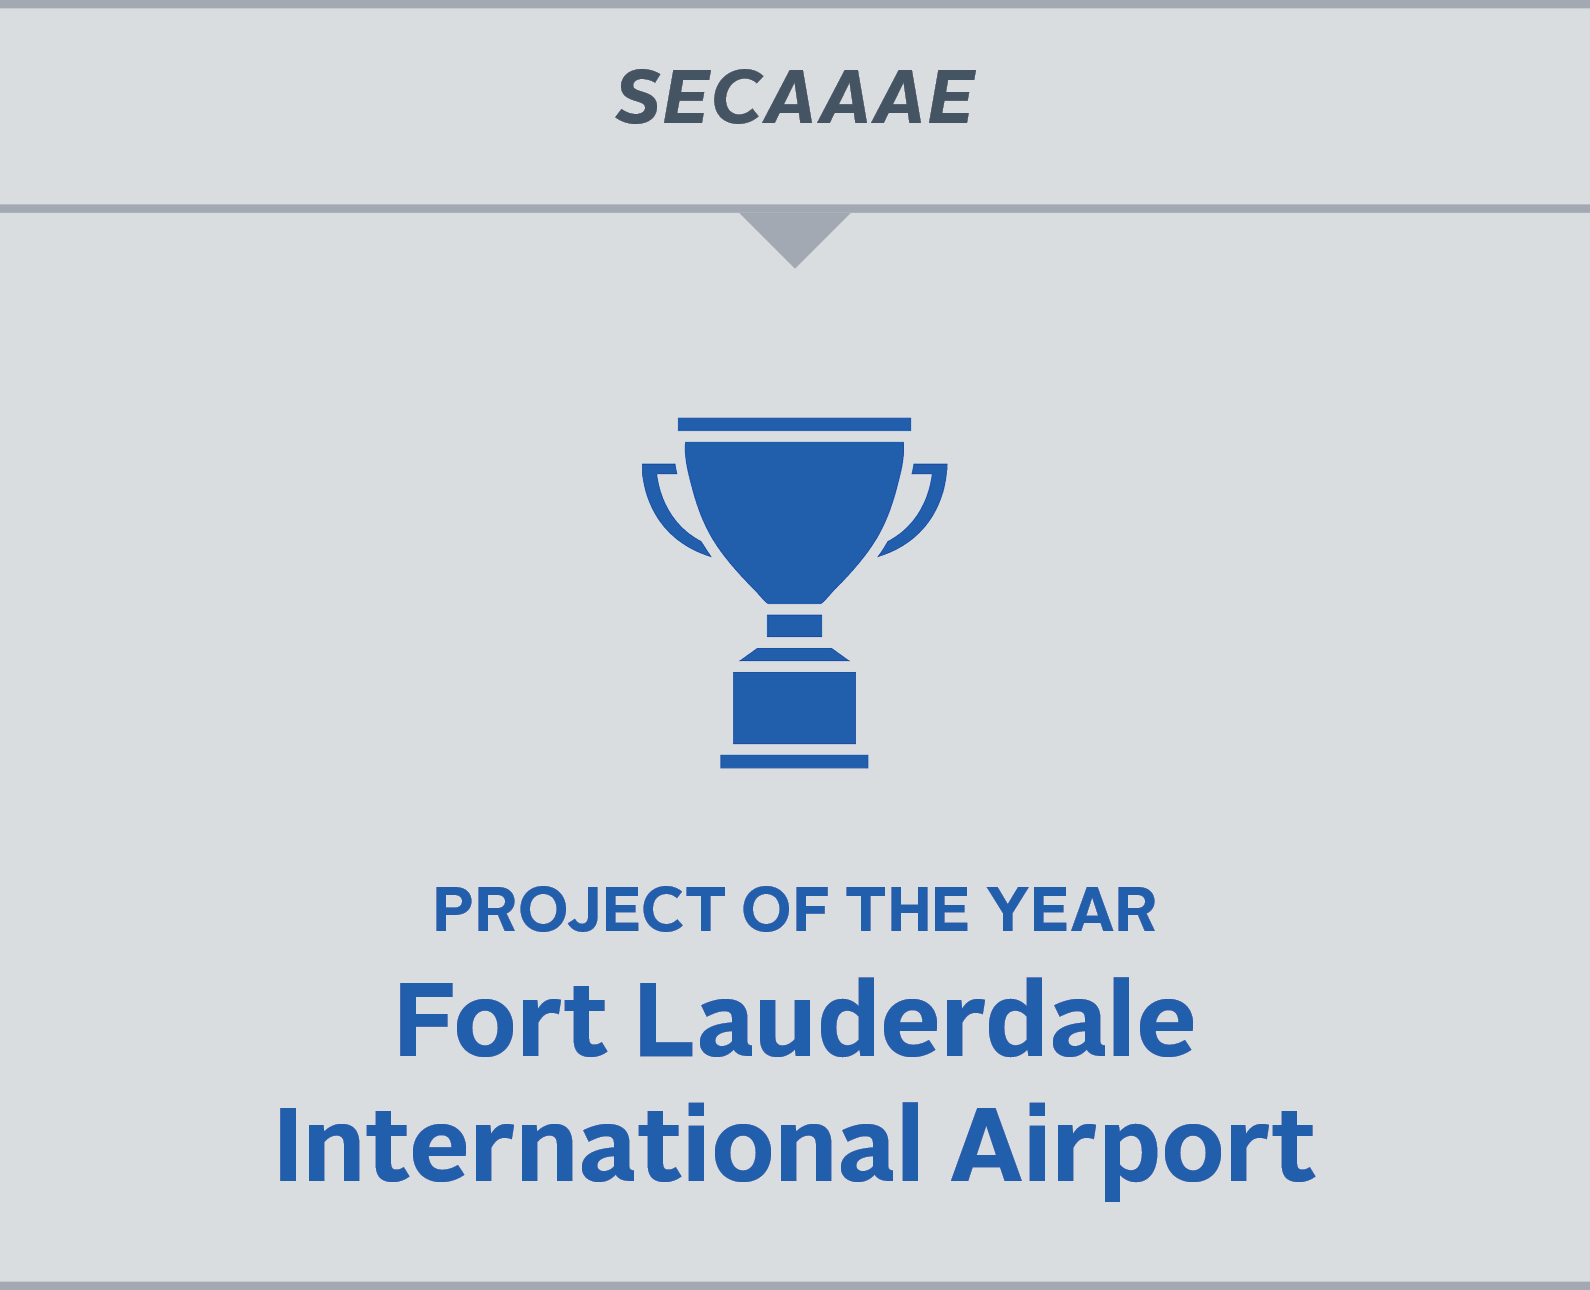 Project of the Year - Fort Lauderdale International Airport.